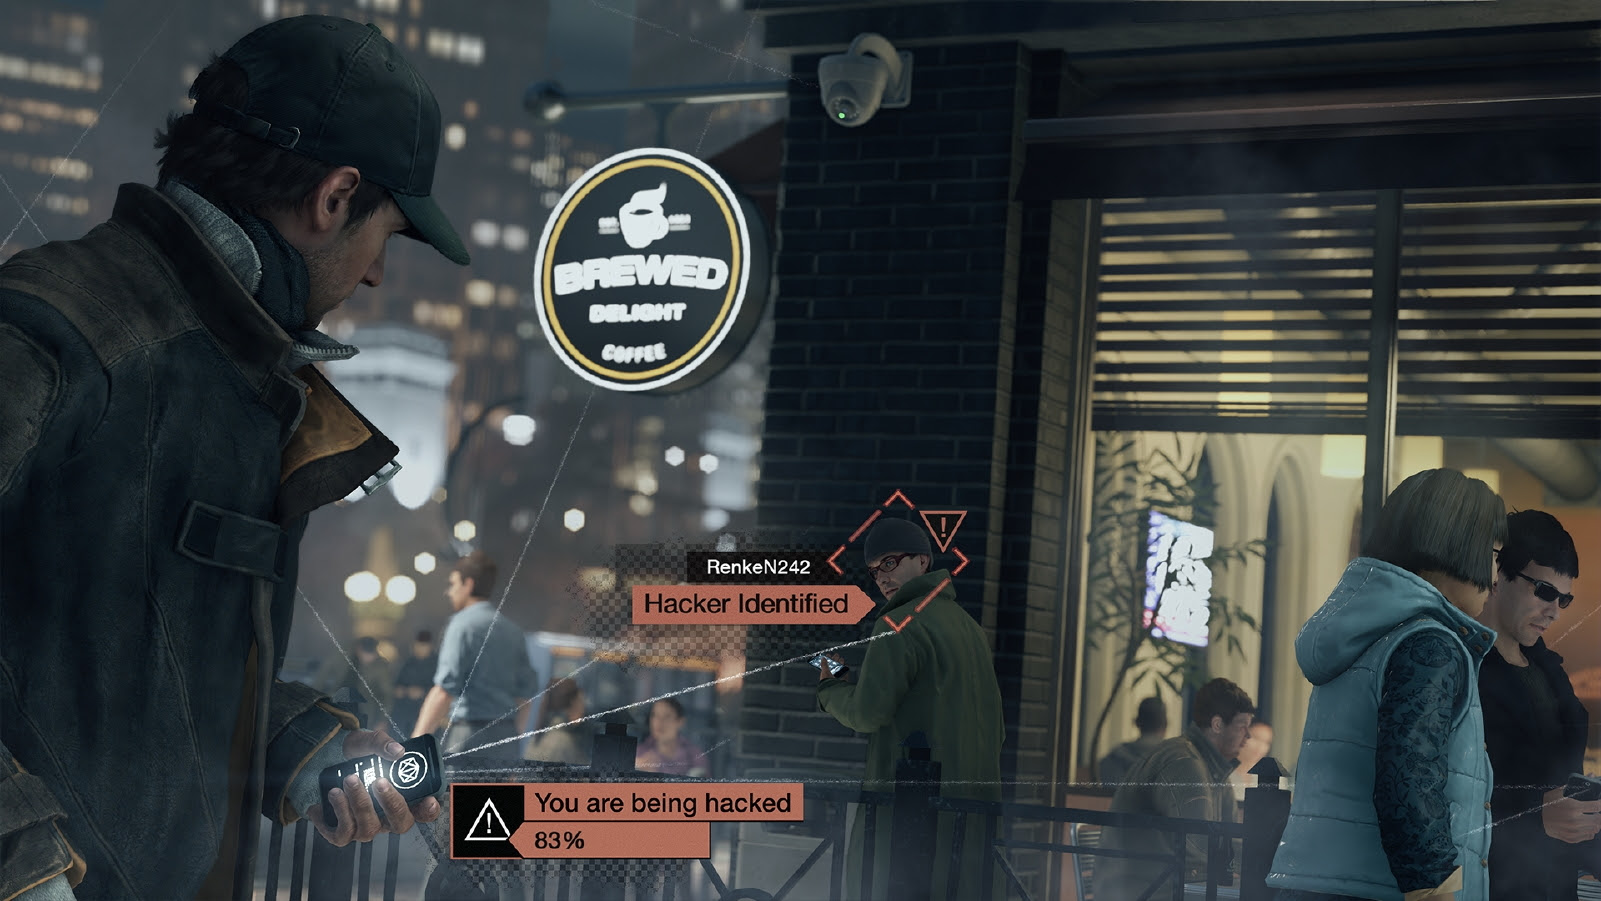 http://assets.vg247.com/current//2014/05/watch_dogs_ps4.jpg